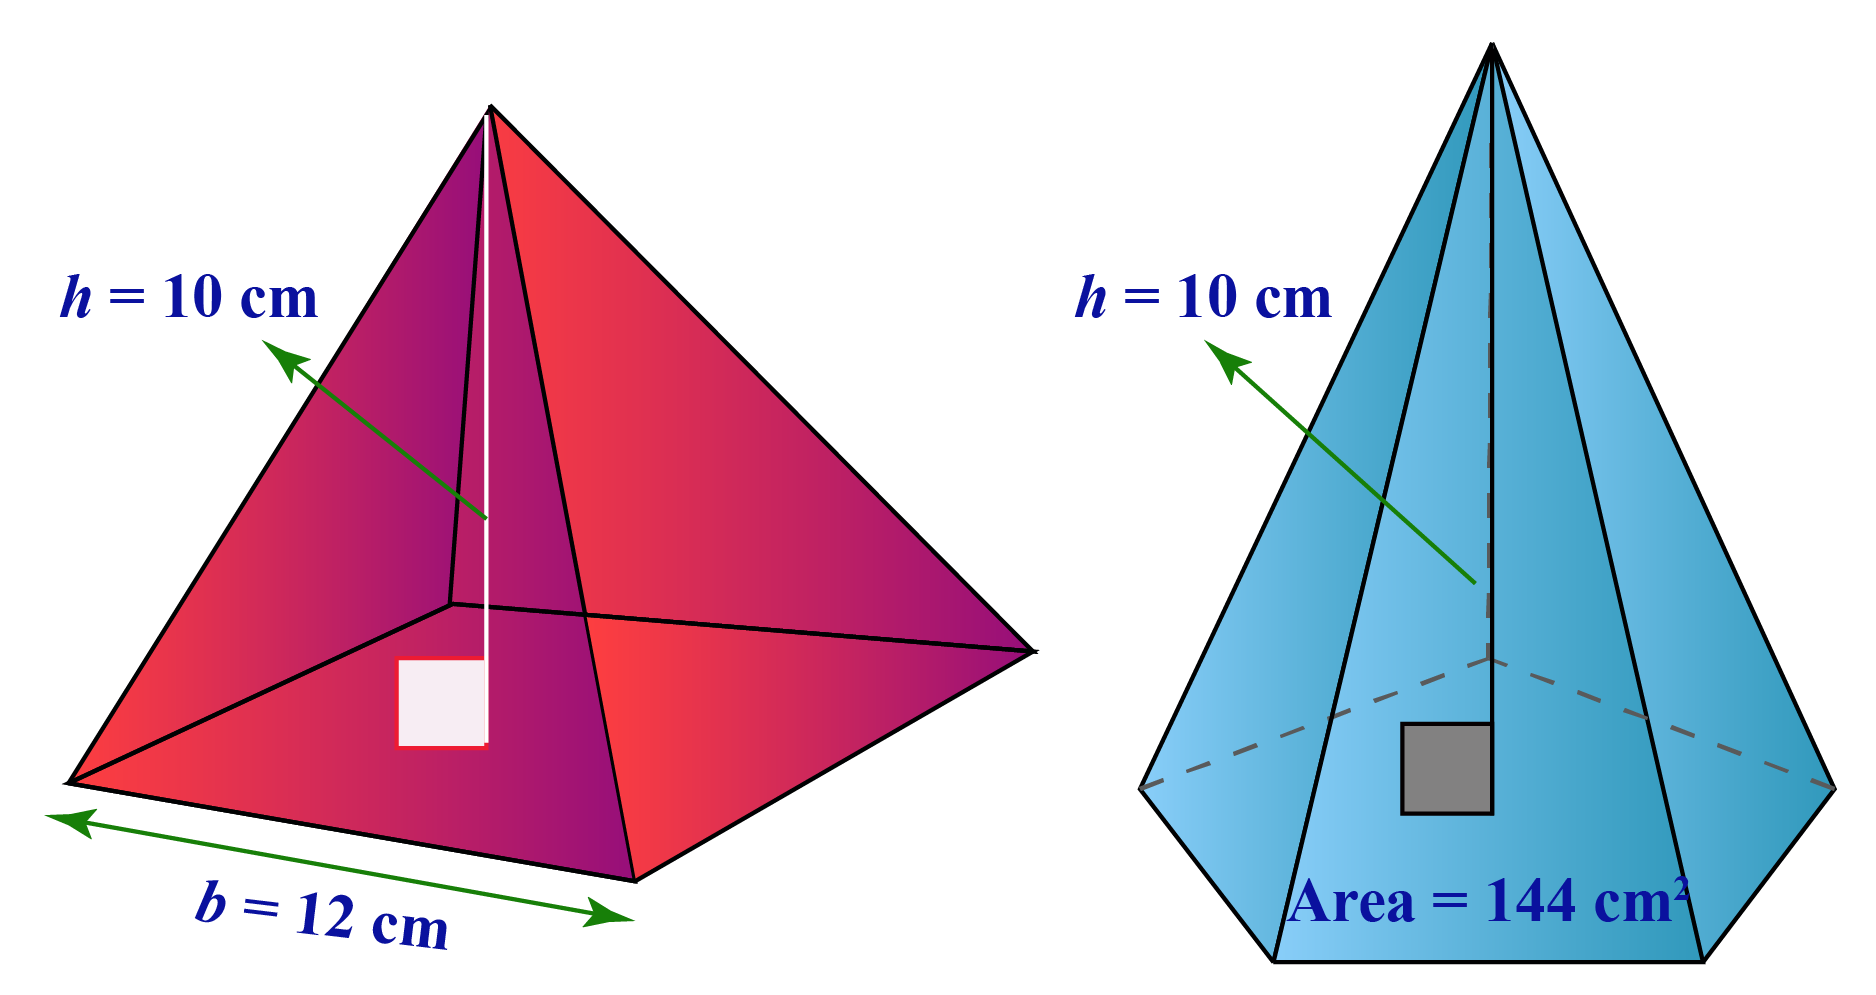 Compare the volume of a quadrilateral pyramid with a square base with that of a pentagonal pyramid